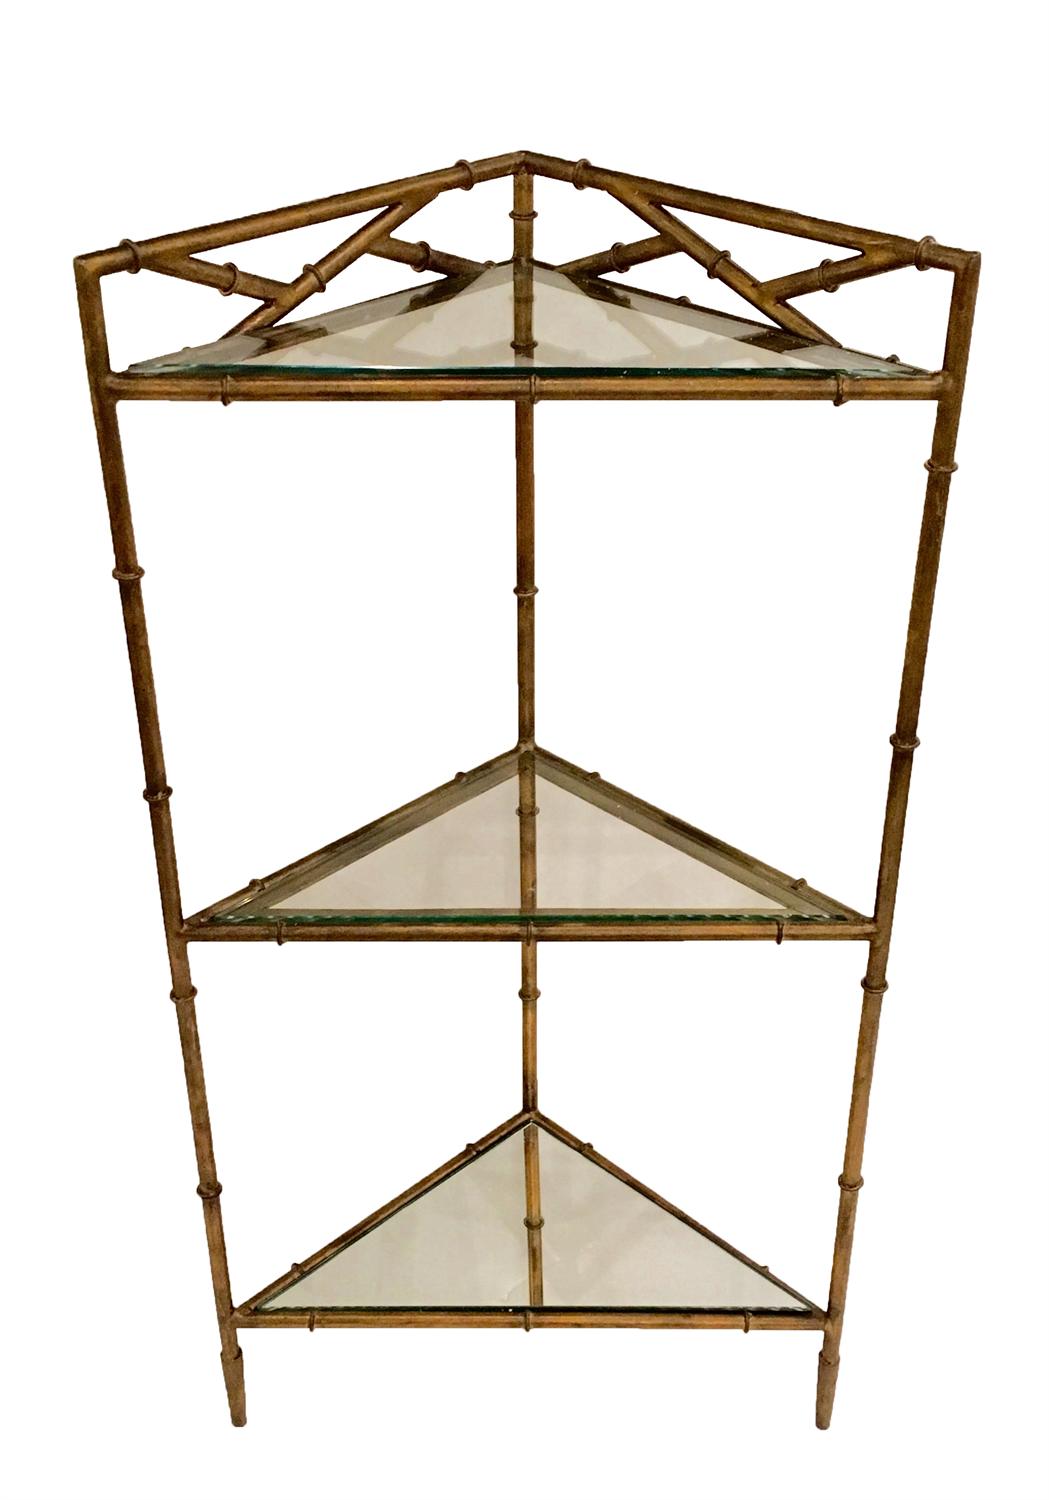 dessau home antique gold bamboo triangle three tier corner accent table oversized outdoor umbrellas dining arrangement dale crystal lamp oval coffee plans mirror box frame marble